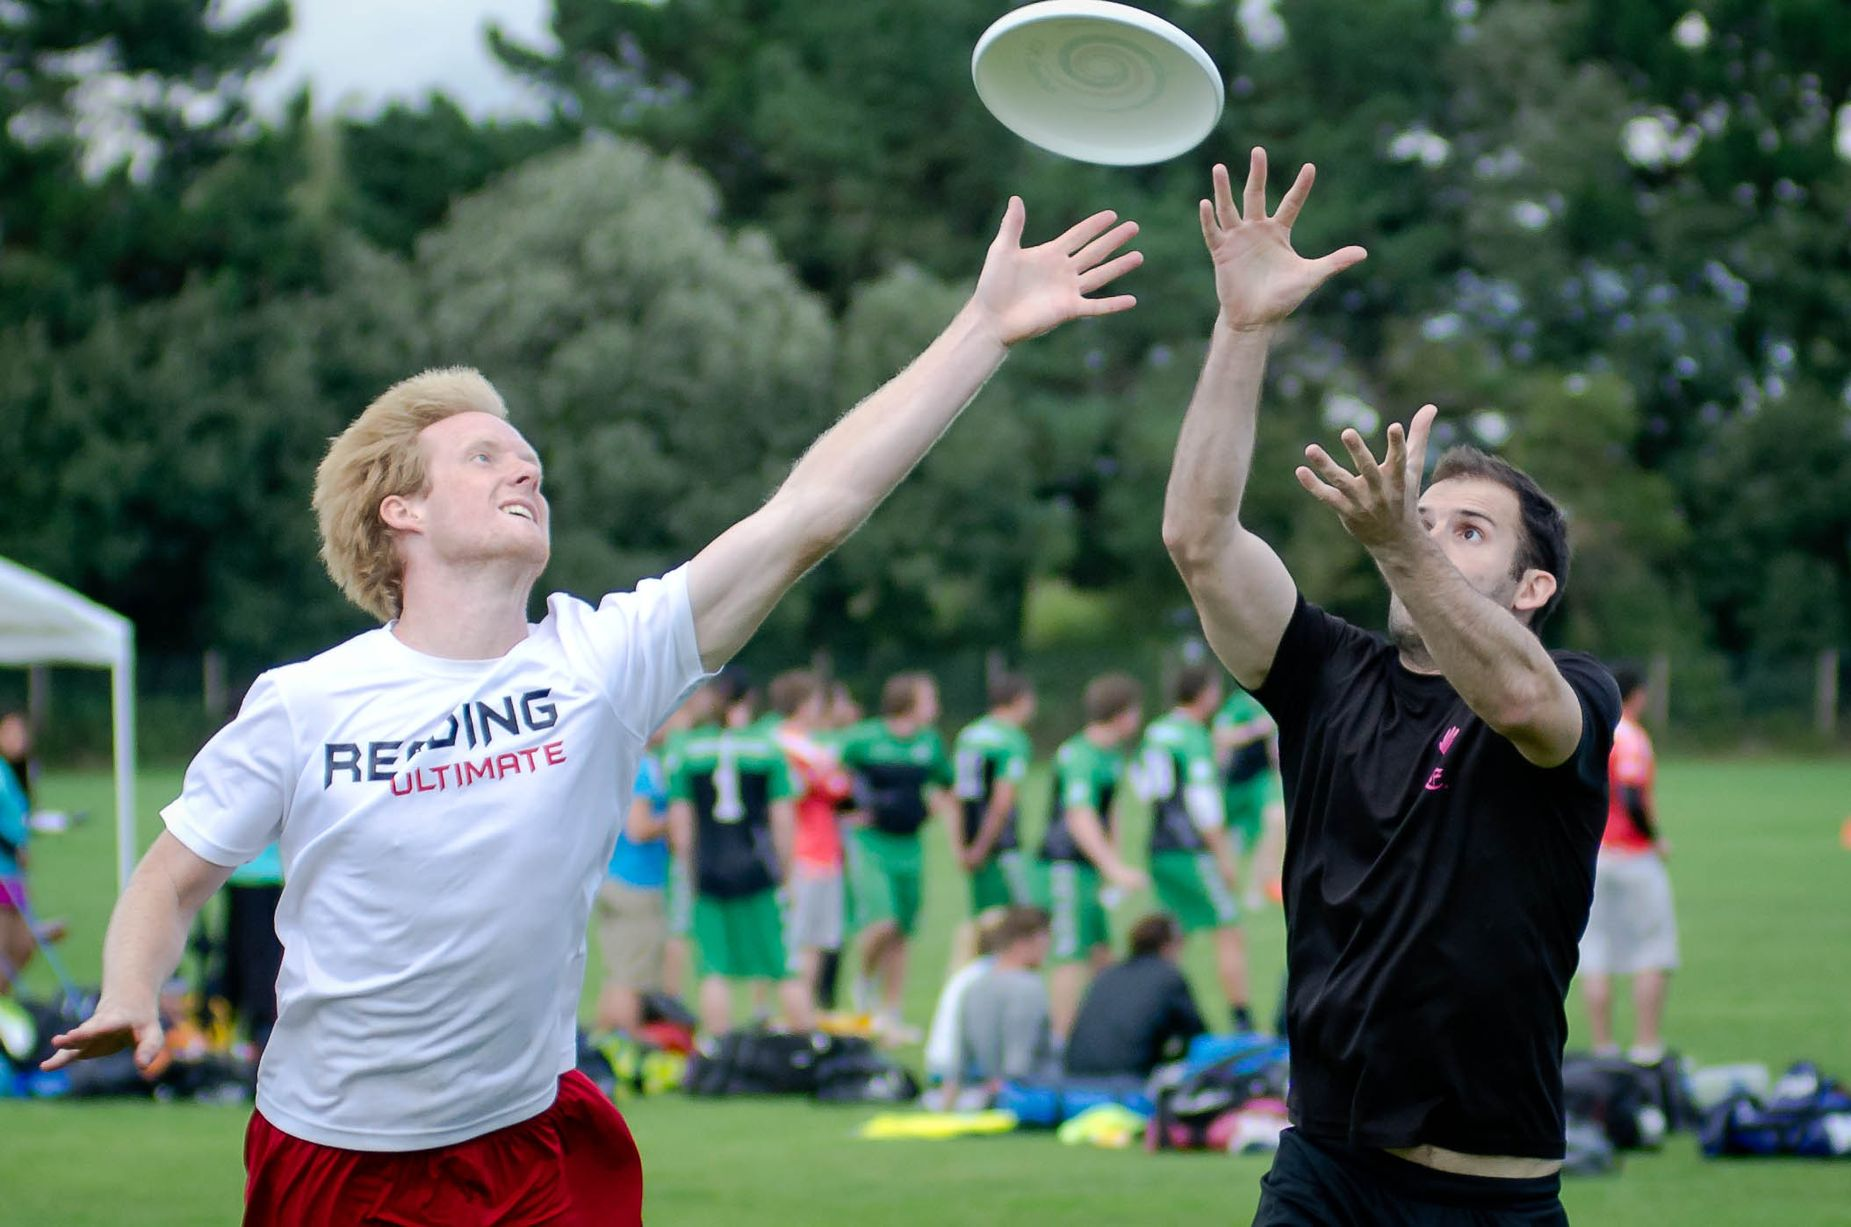 Two mean contesting for the frisbee